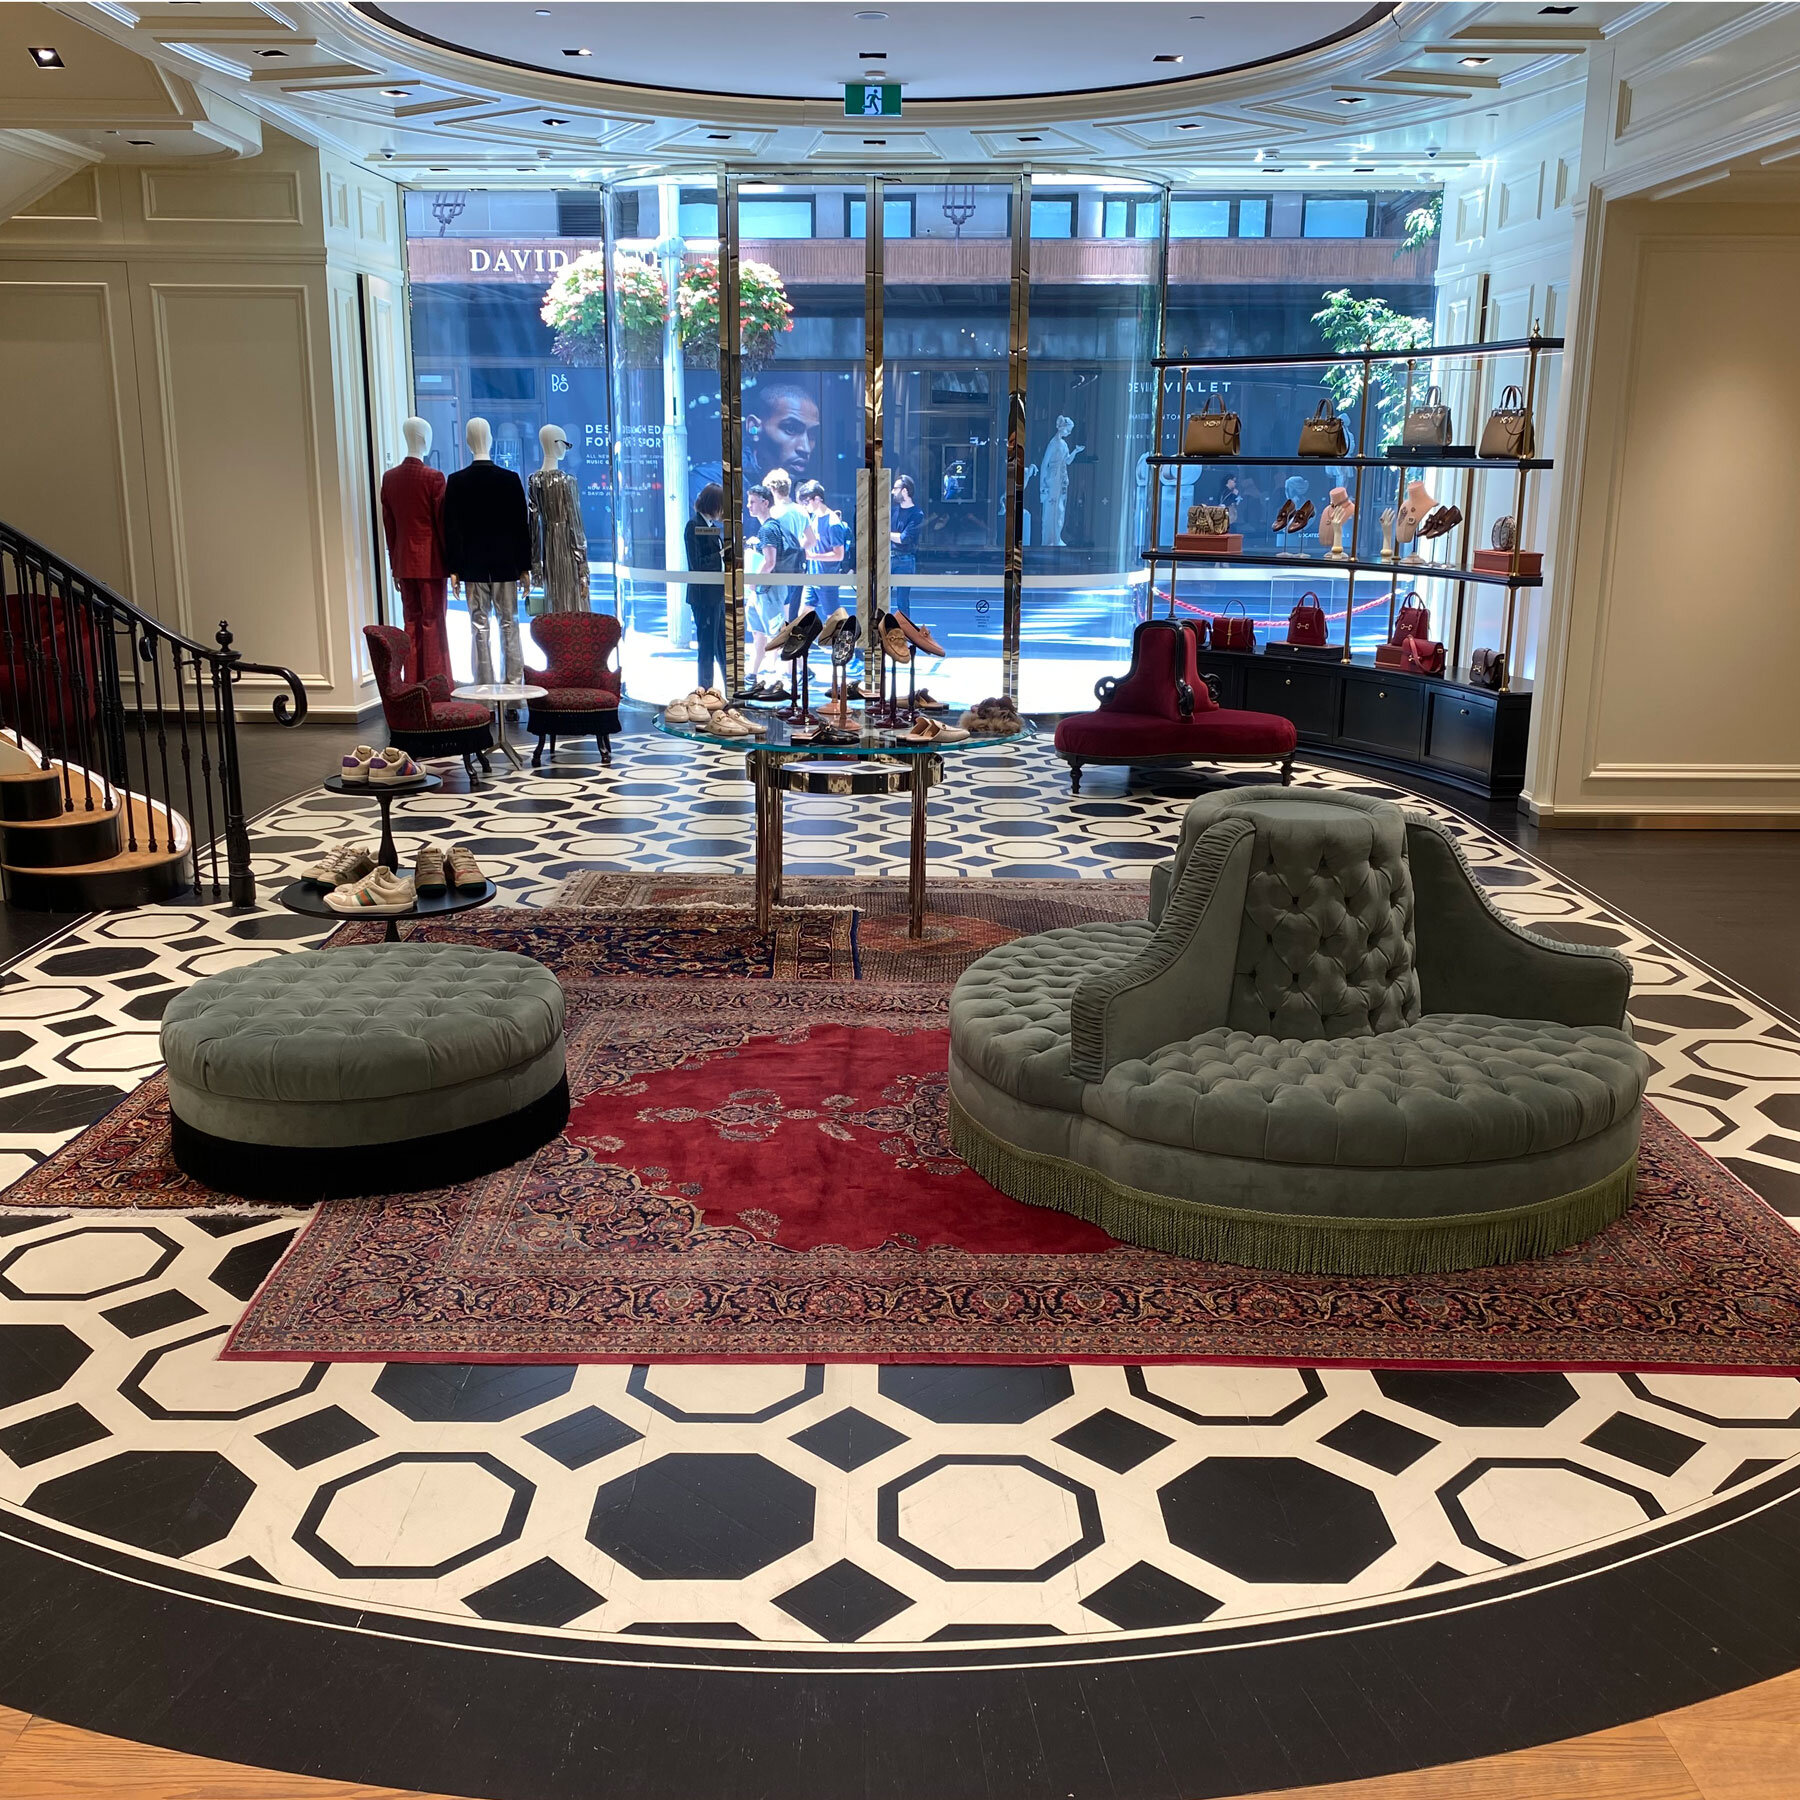 Opulent Painted Parquet Floors in Gucci Flagship Store